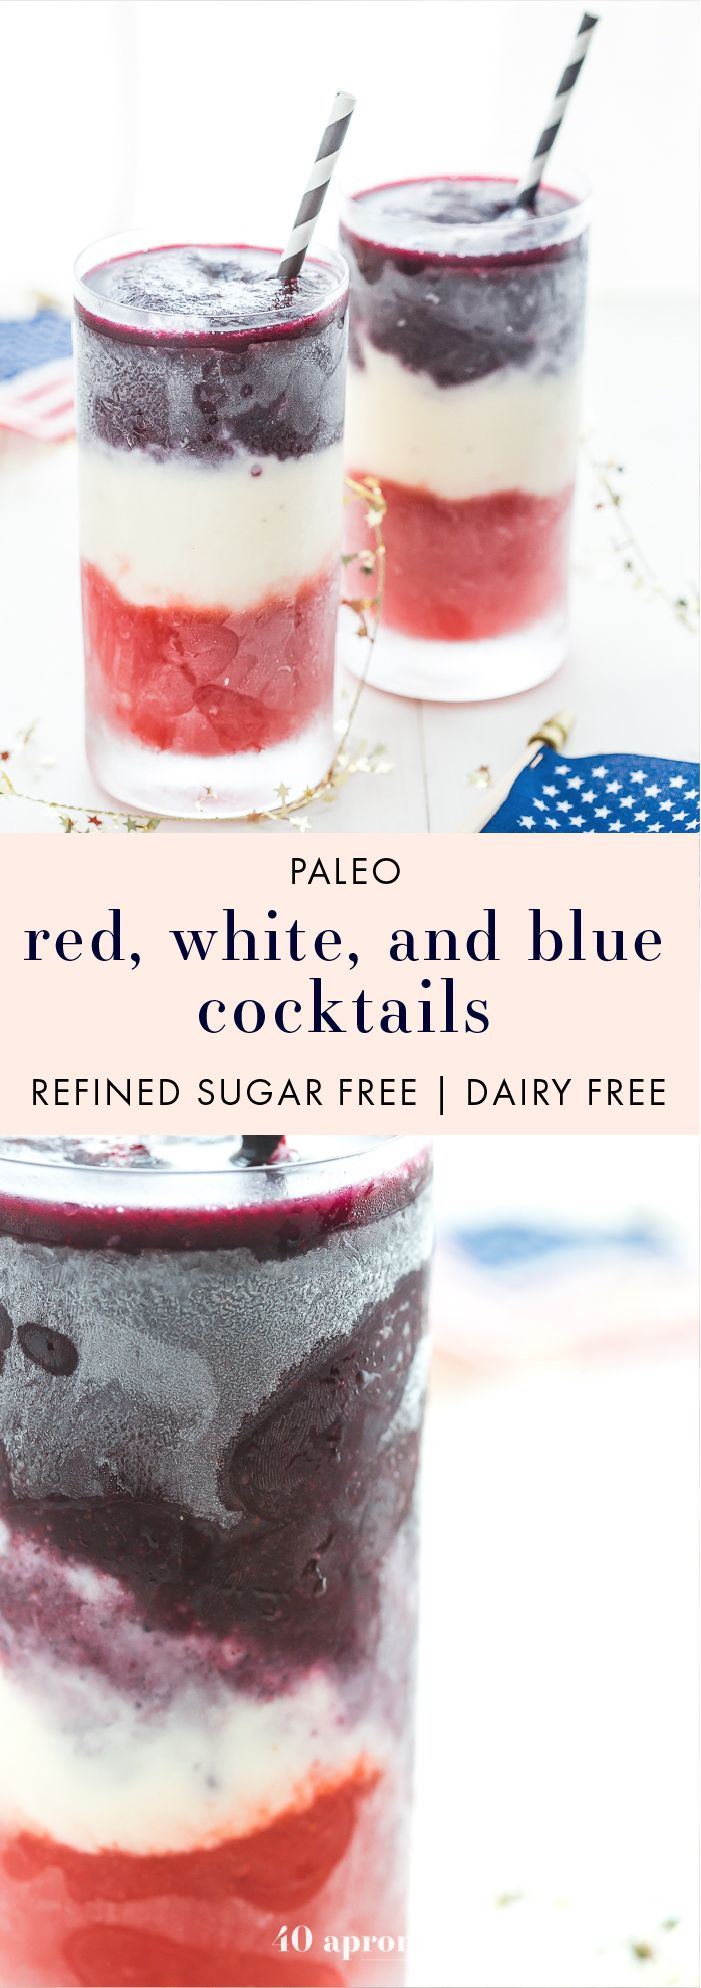 These paleo red, white, and blue cocktails are perfect 4th of July cocktails: boozy, fruity layers form a striking drink that tastes delish. Easy to make and free of refined sugar and dairy, these are the perfect Memorial Day cocktails, Labor Day cocktails, or heck, just paleo summer cocktails, too. U-S-A!